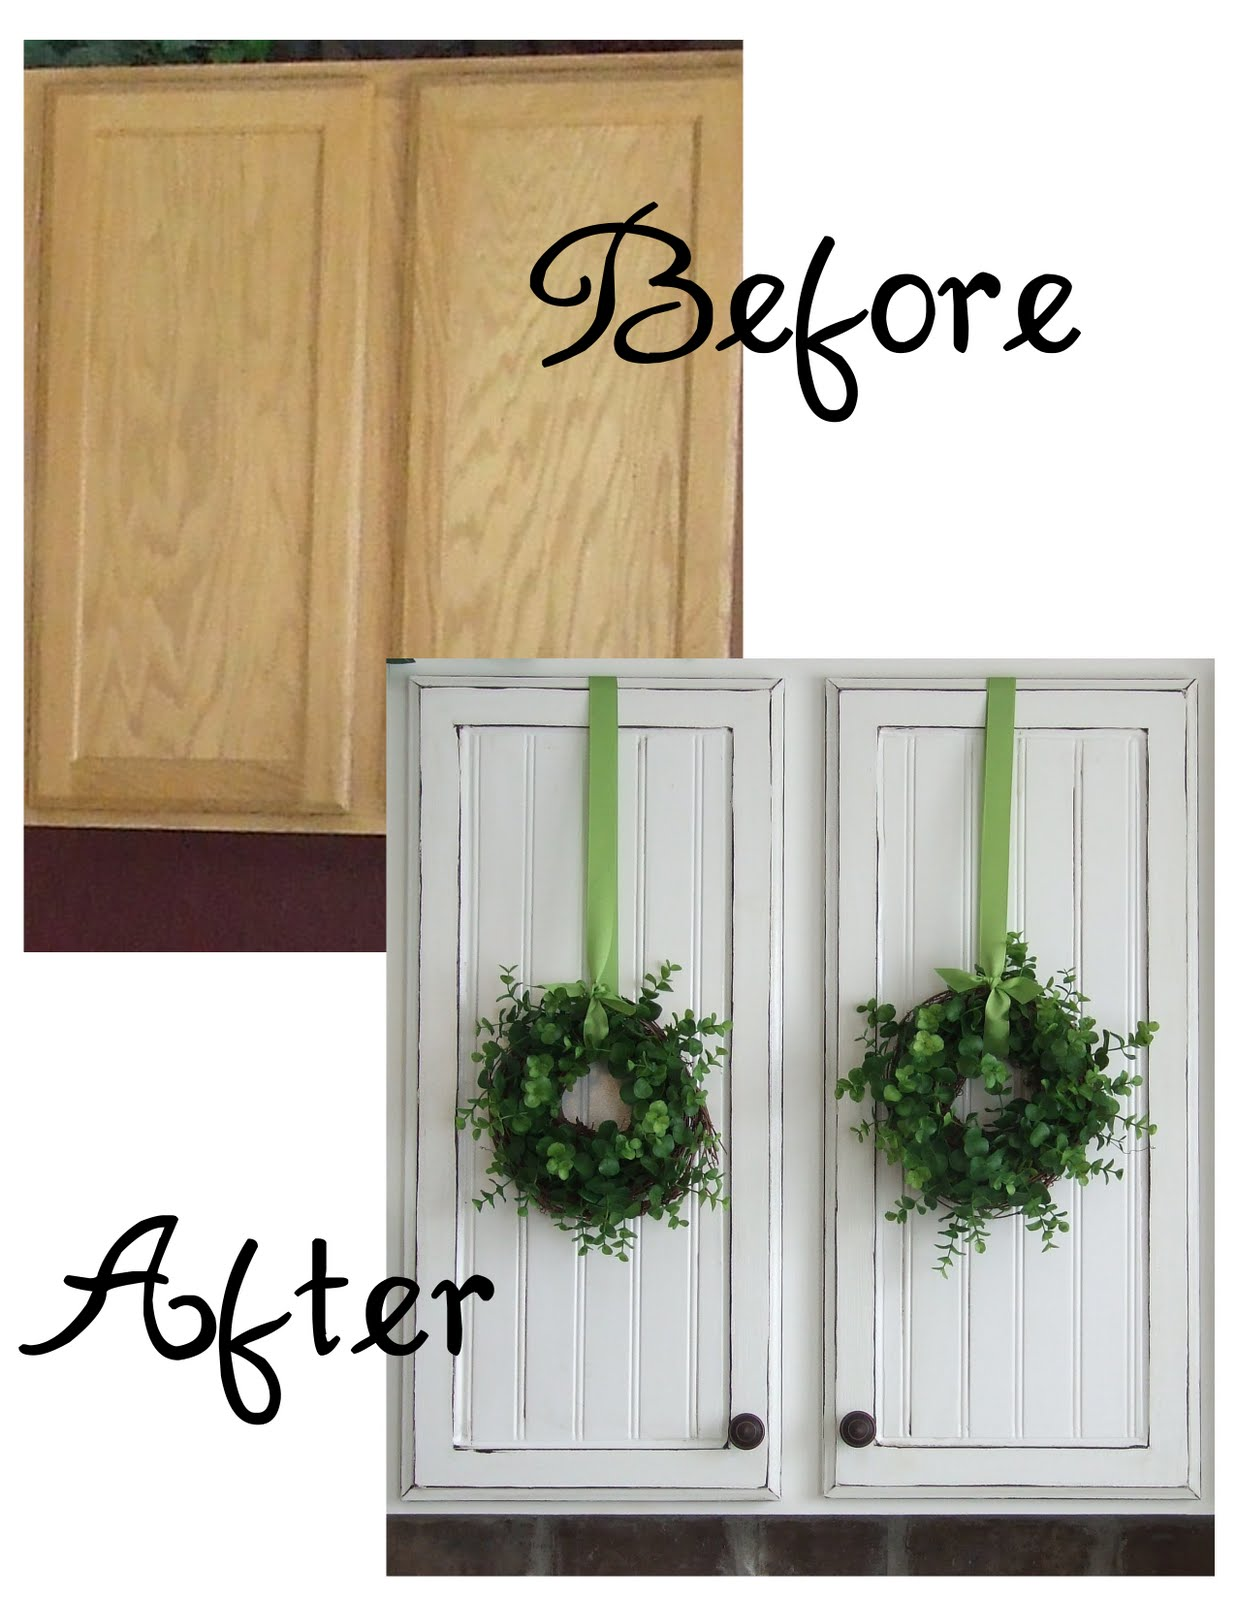 Lowes kitchen cabinet doors - Kitchen cabinet diy makeover ...